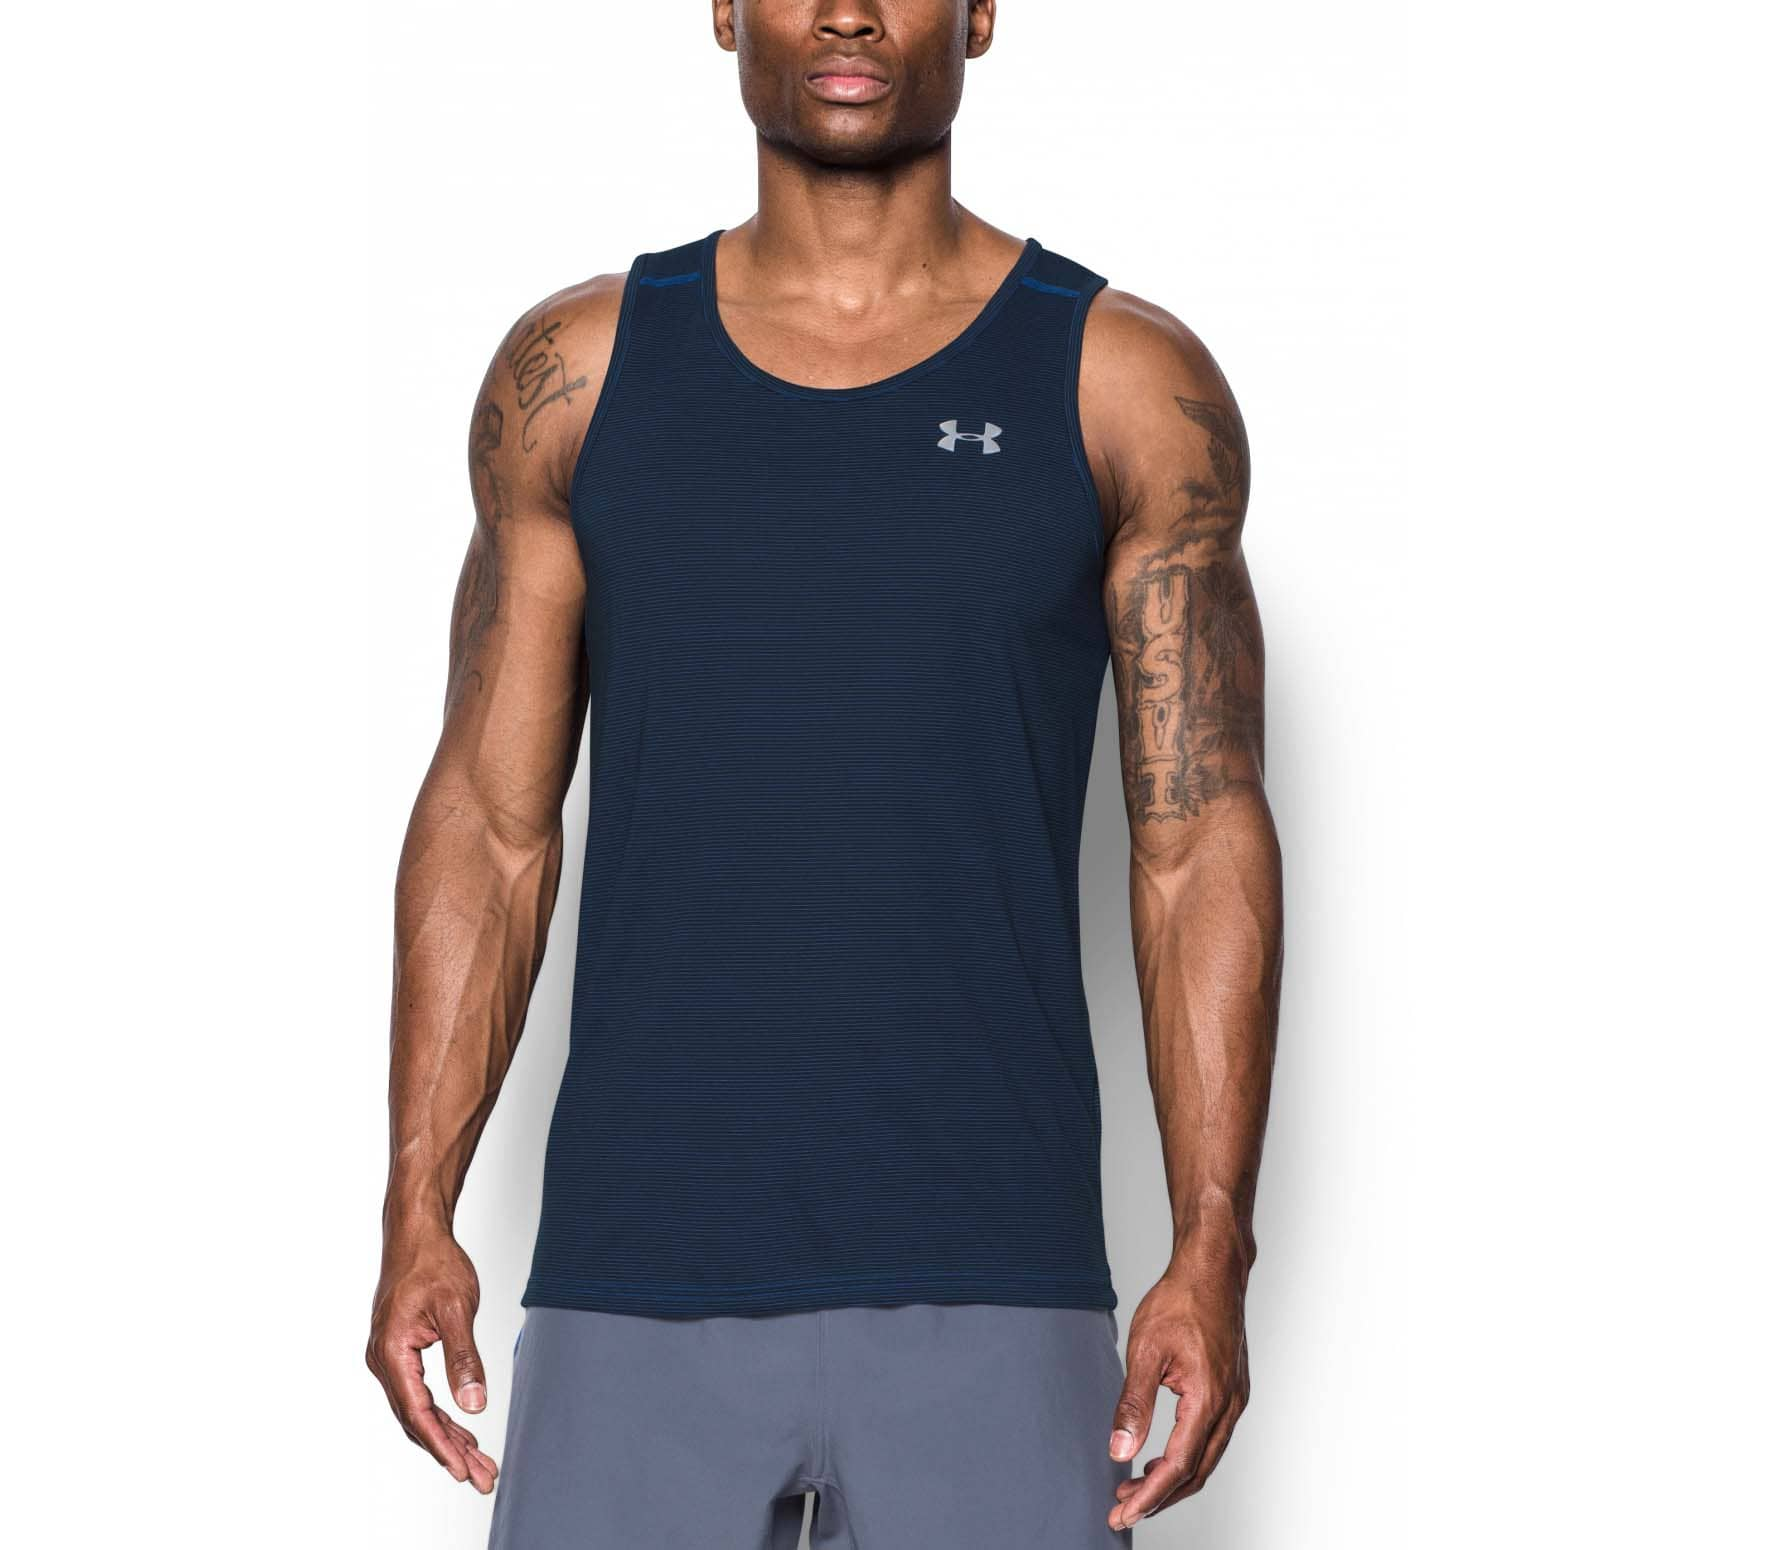 033aec01d533d Under Armour - Threadborne Streaker Singlet men s running tank top top  (blue)